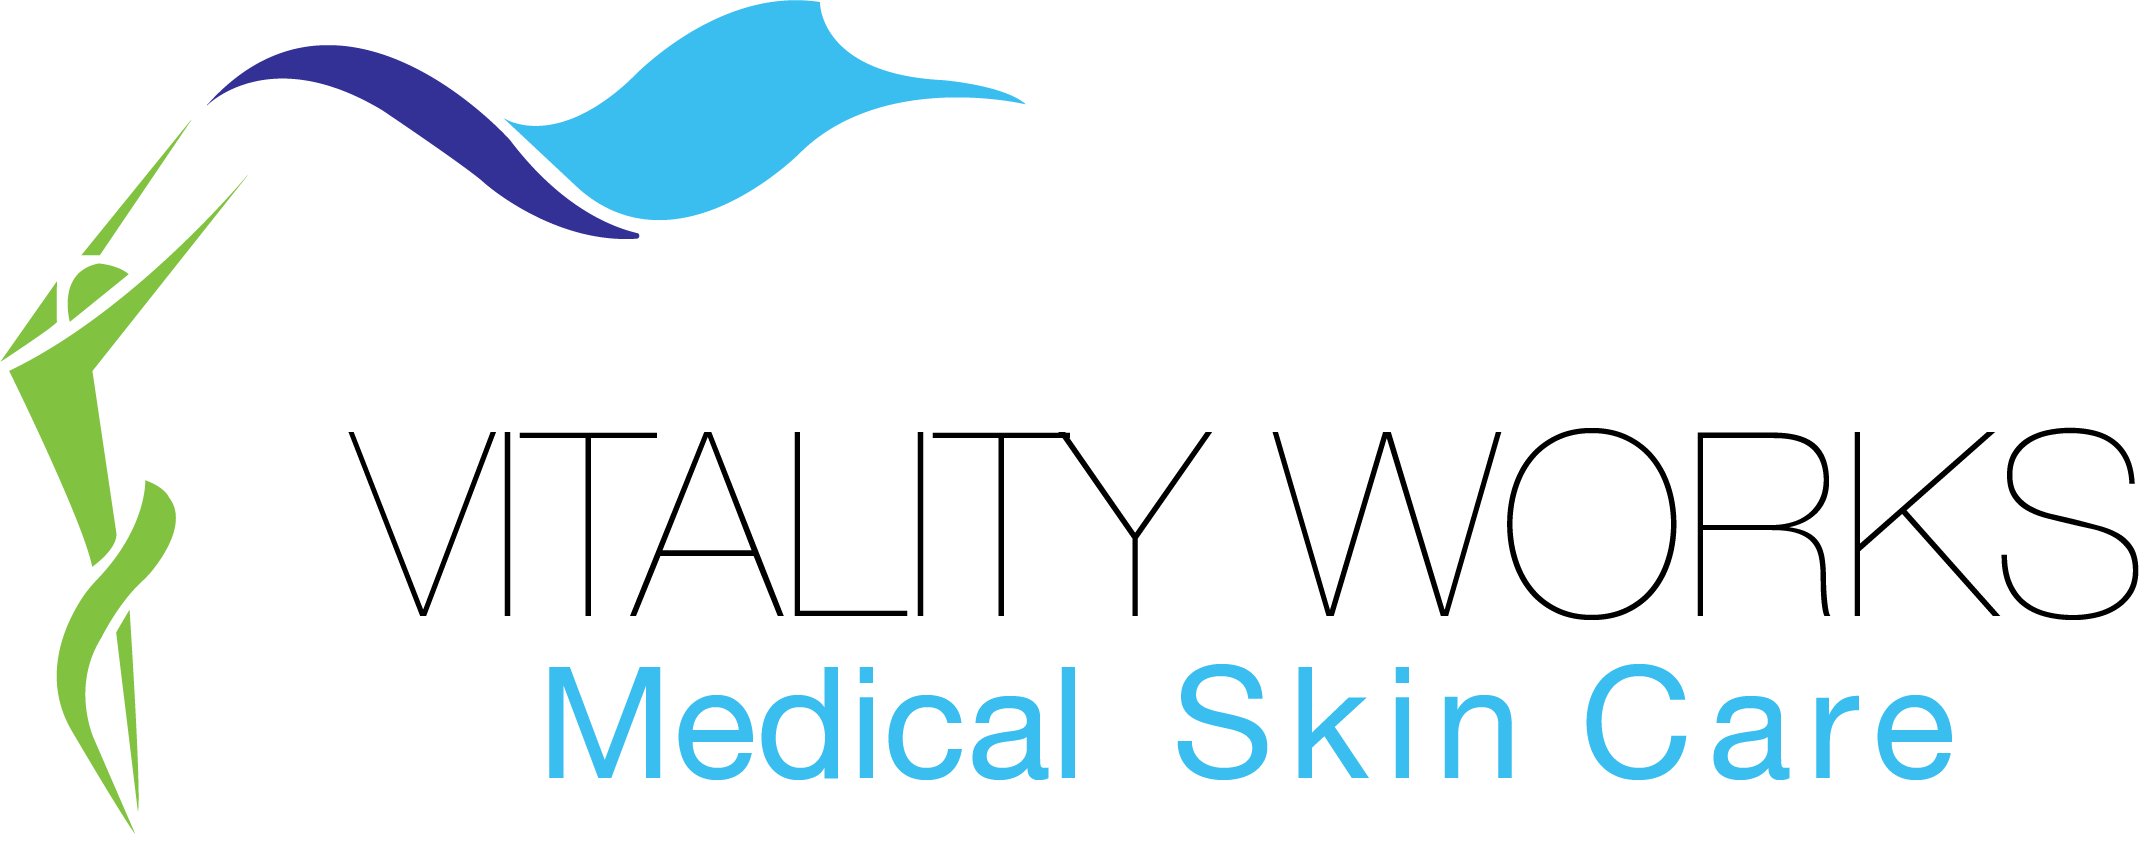 Vitality Works | Medical Skin Care